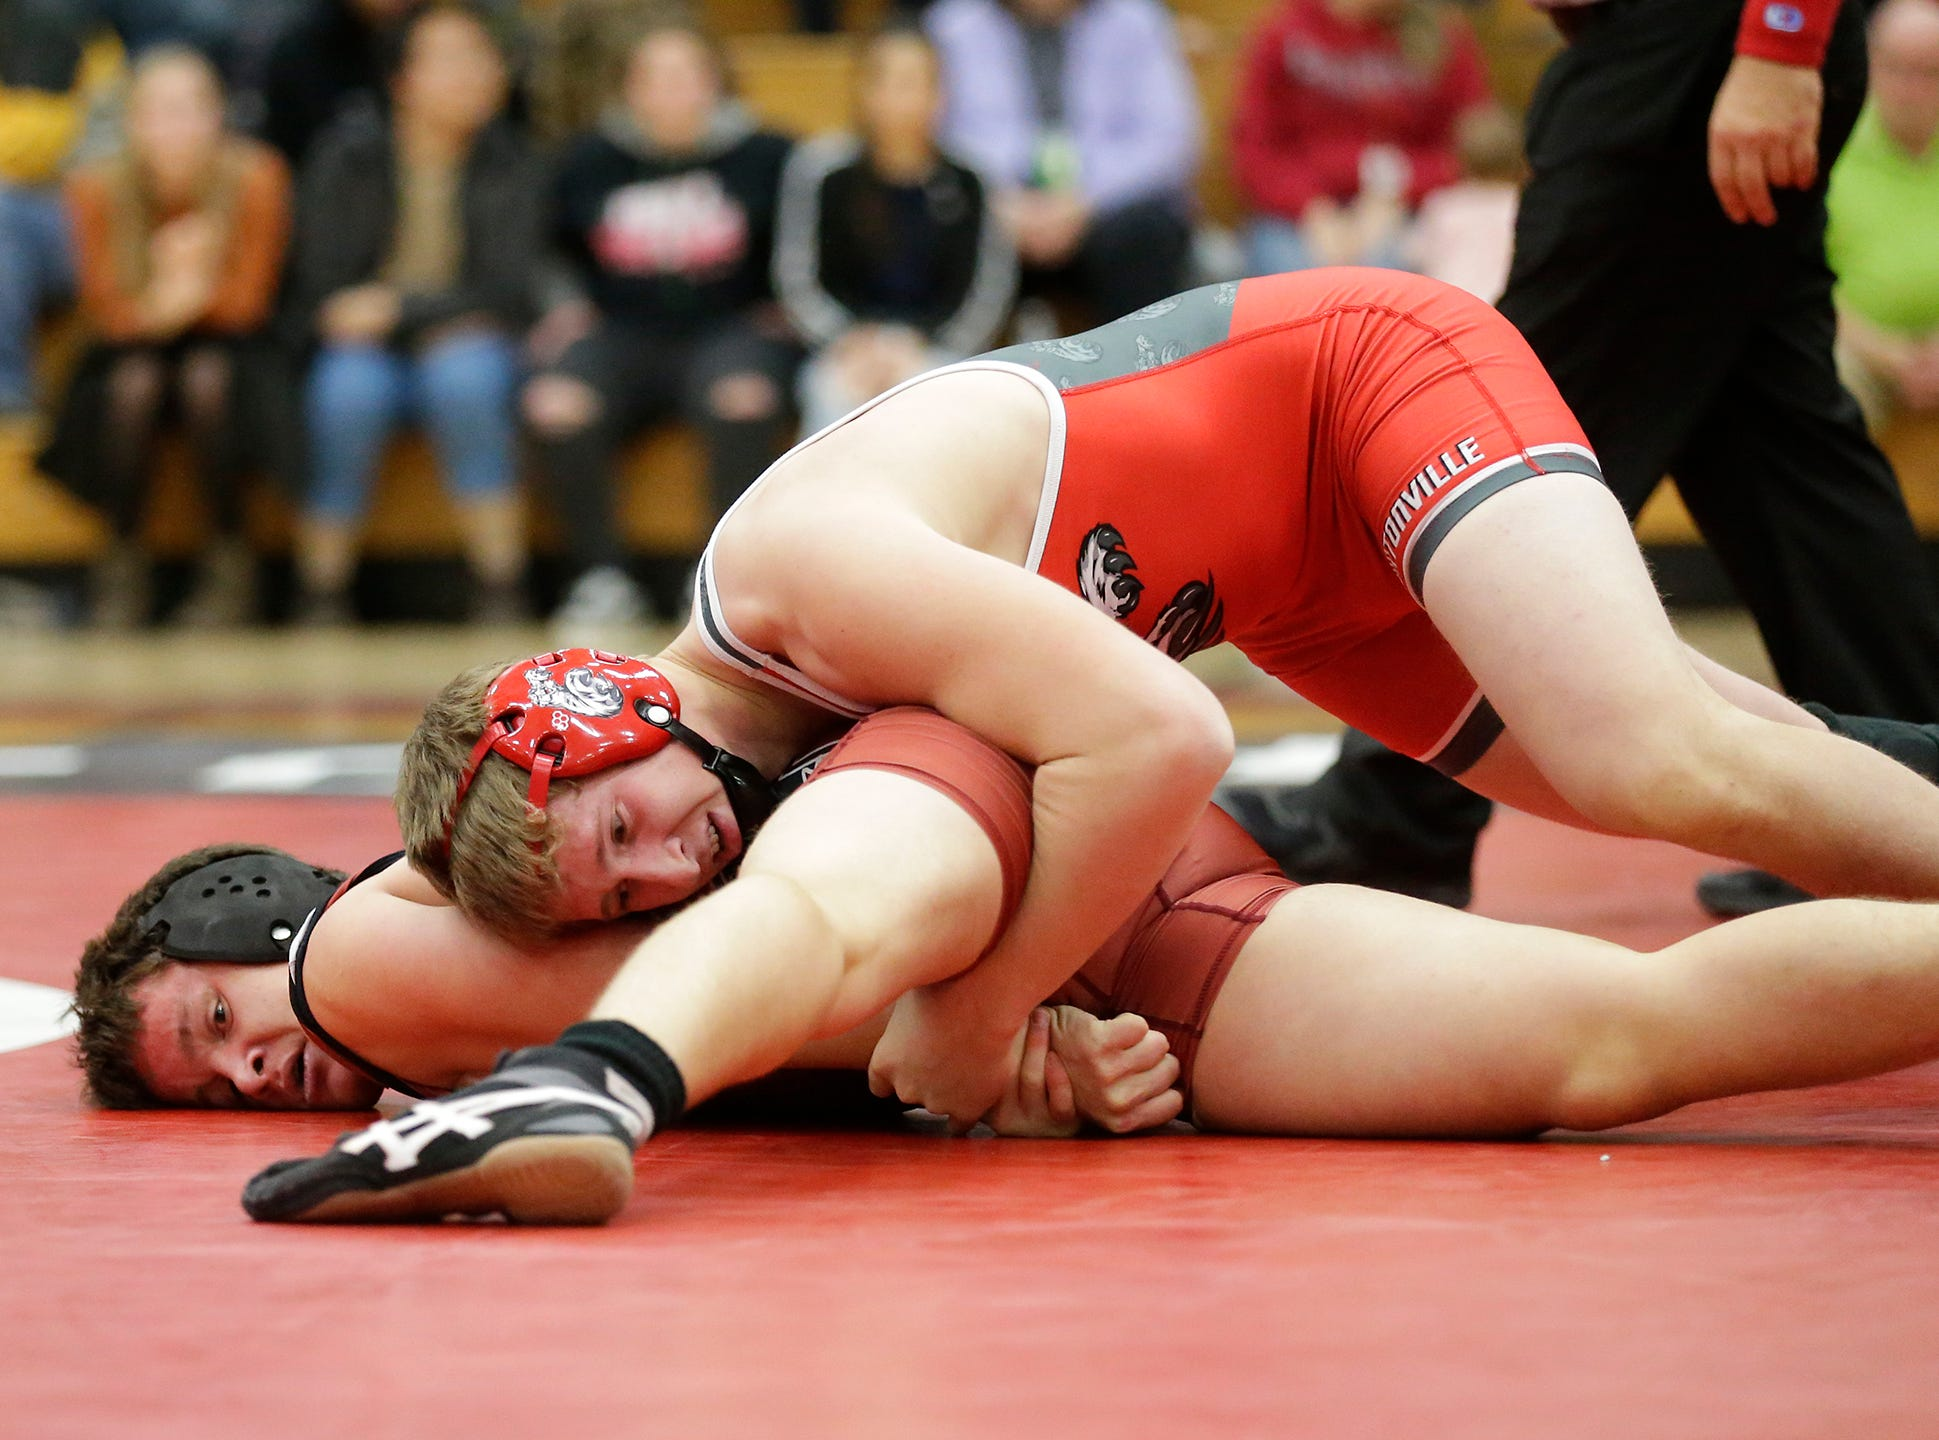 Fond du Lac High School wrestling's Jacob Petrie wrestles against Colin Schuler of Hortonville High School in the 170 weight class during their meet Thrusday, December 6, 2018 in Fond du Lac, Wisconsin. Schuler won the match with a pin and Fond du Lac won the meet 51-18. Doug Raflik/USA TODAY NETWORK-Wisconsin